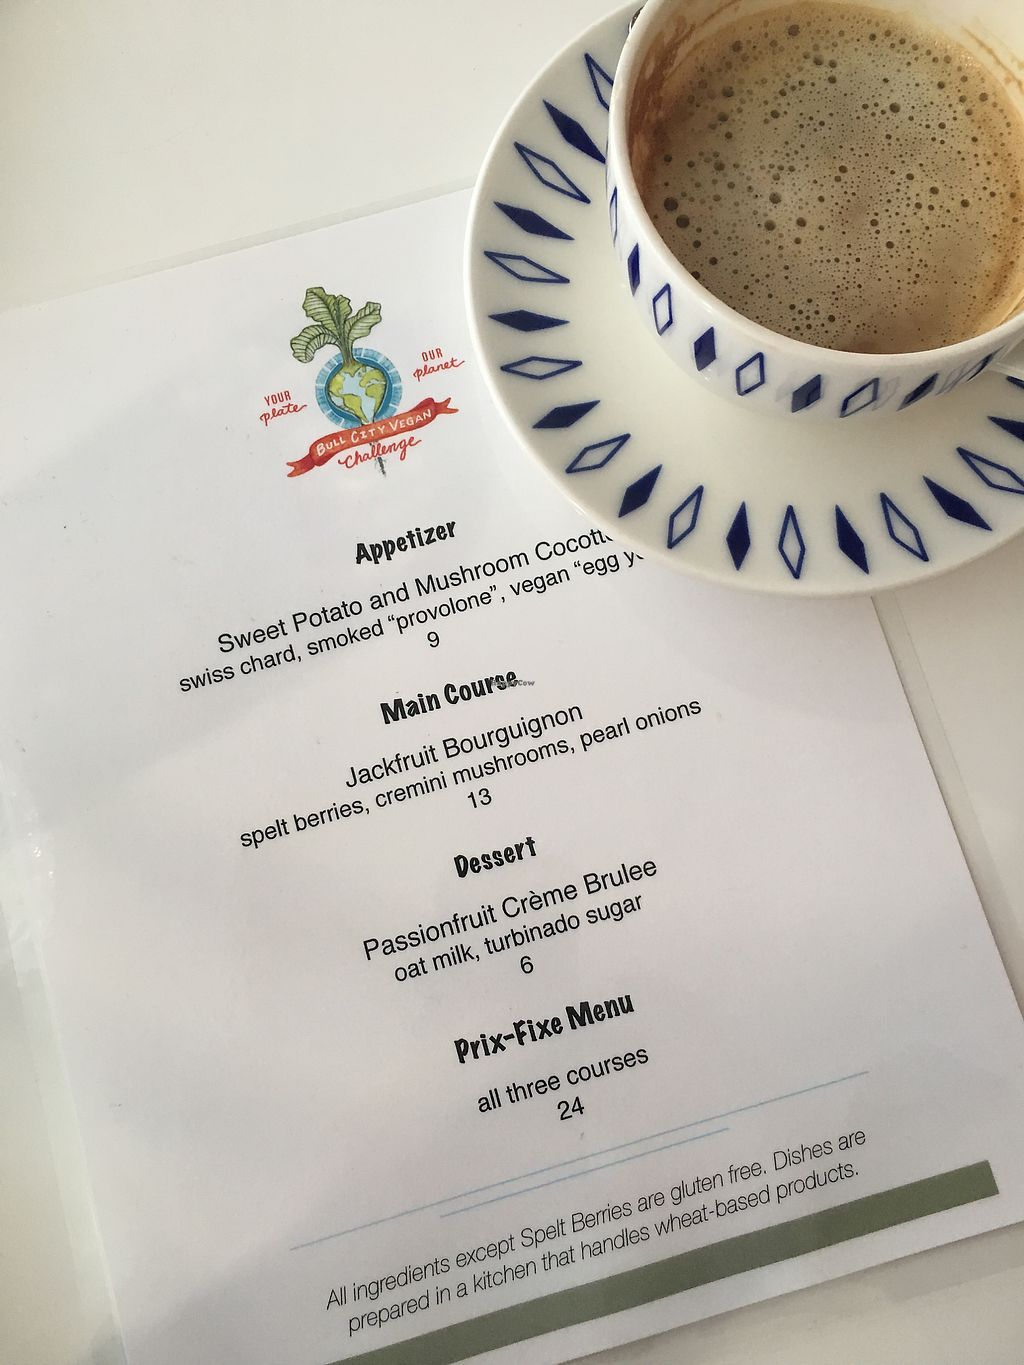 """Photo of Unscripted  by <a href=""""/members/profile/turtleveg"""">turtleveg</a> <br/>Unscripted Menu for the Bull City Vegan Challenge and Oatly cappuccino  <br/> April 8, 2018  - <a href='/contact/abuse/image/116974/382173'>Report</a>"""